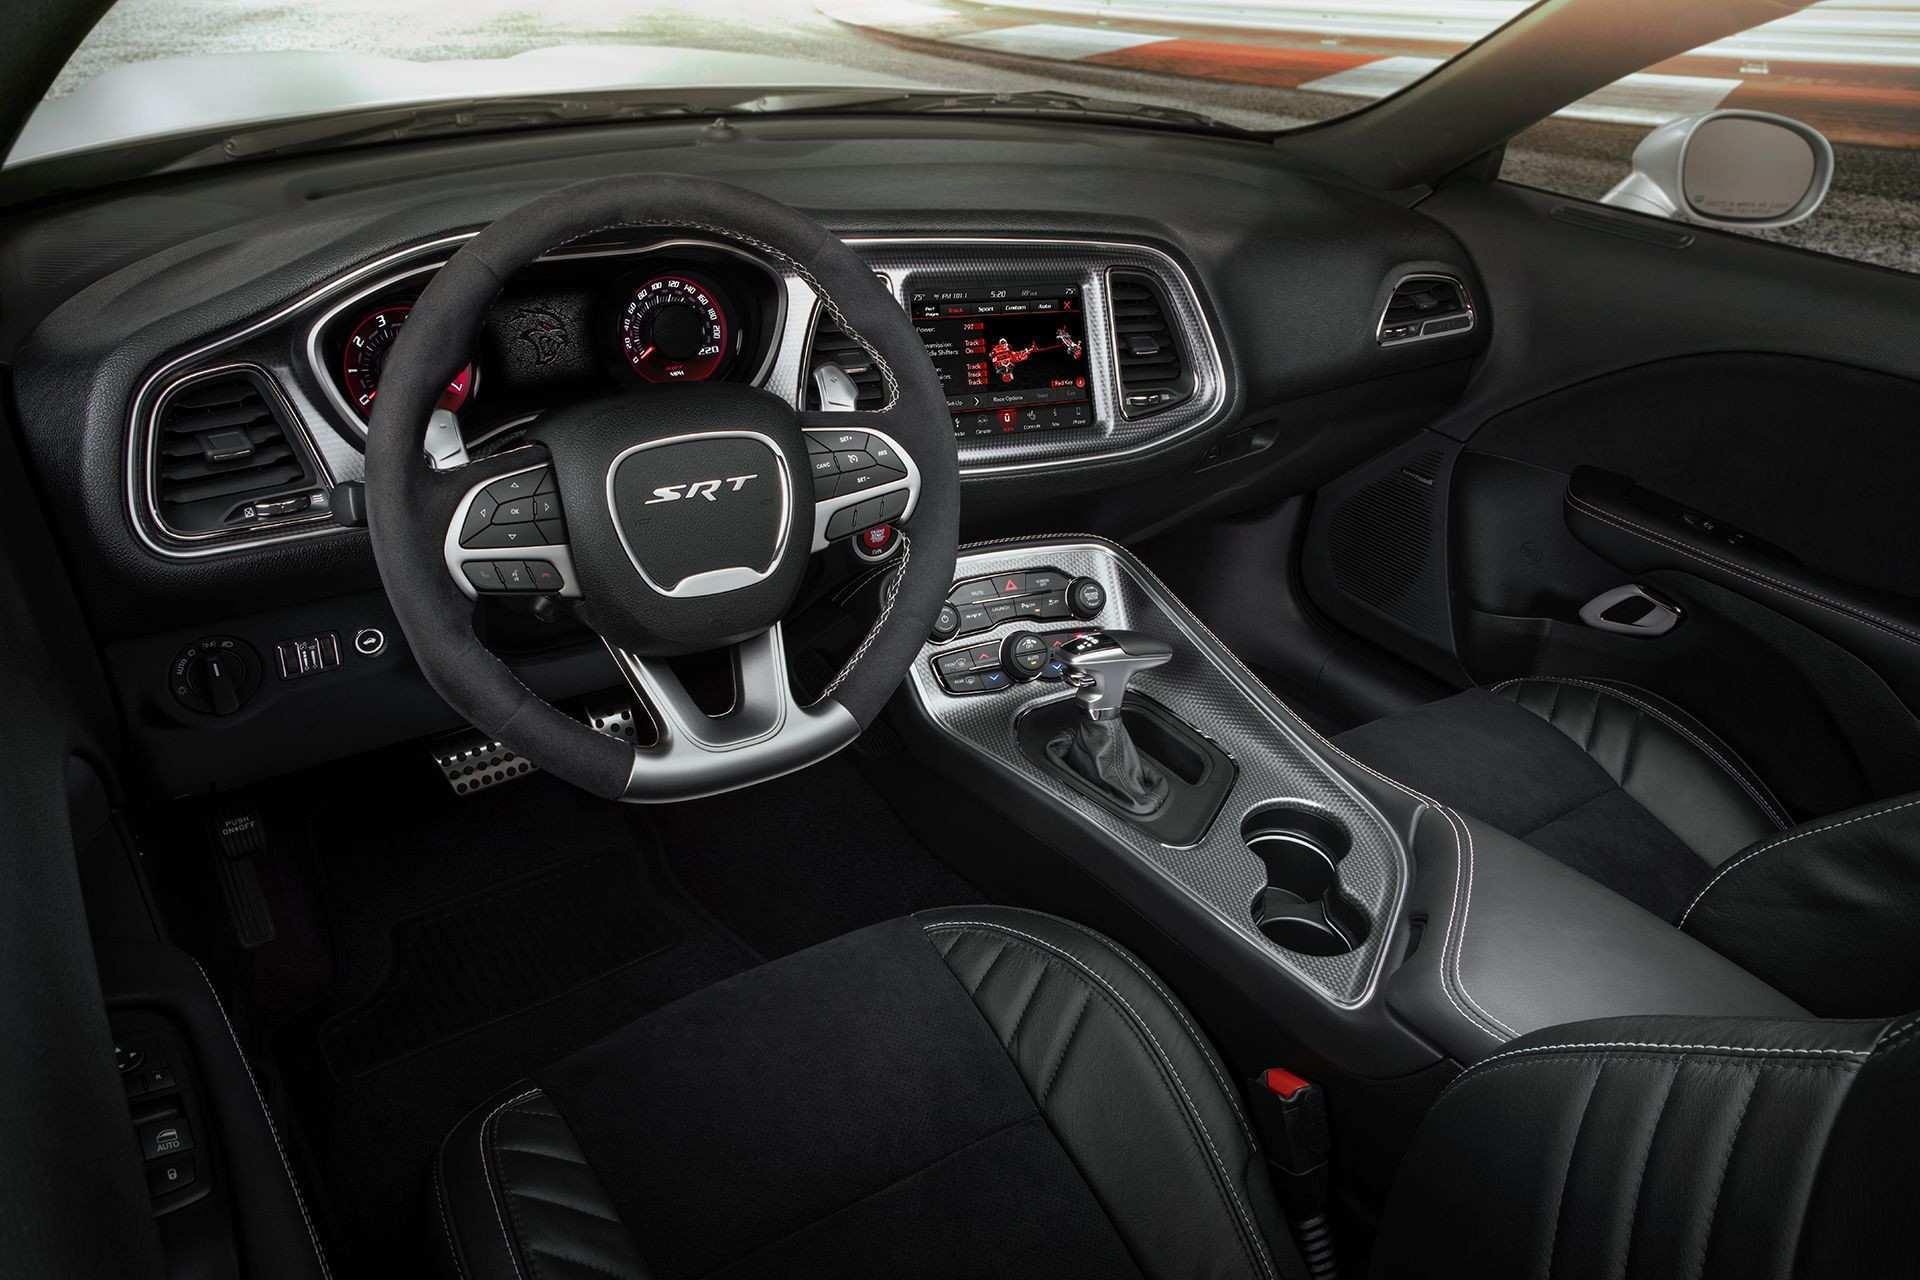 38 A 2019 Dodge Interior Images